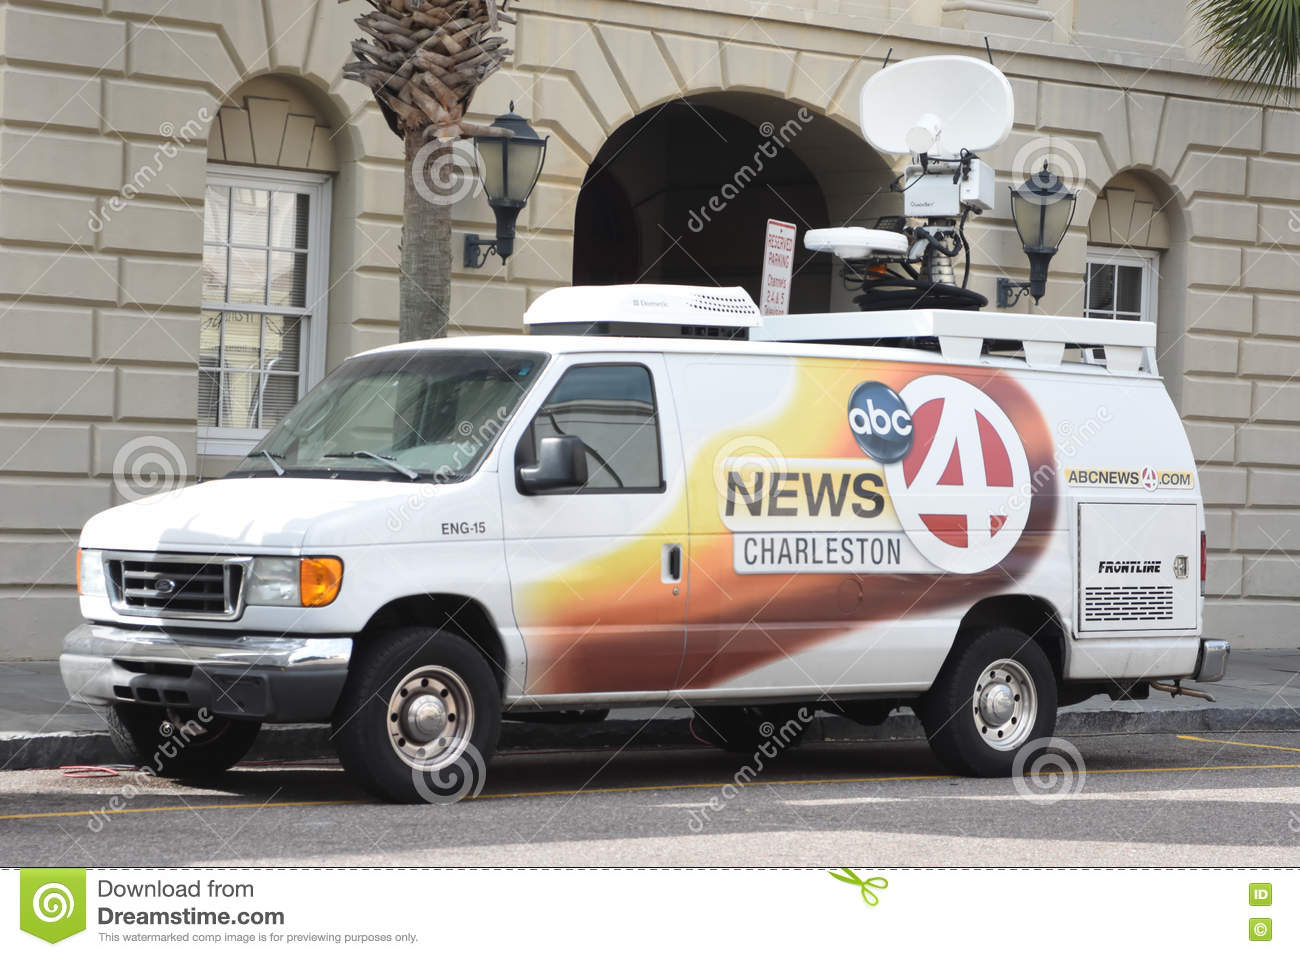 Abc News 4 Satellite Truck Near Court House As Former North Charleston Police Officer Michael Slager Is On Trial In The Of Motorist Walter Scott